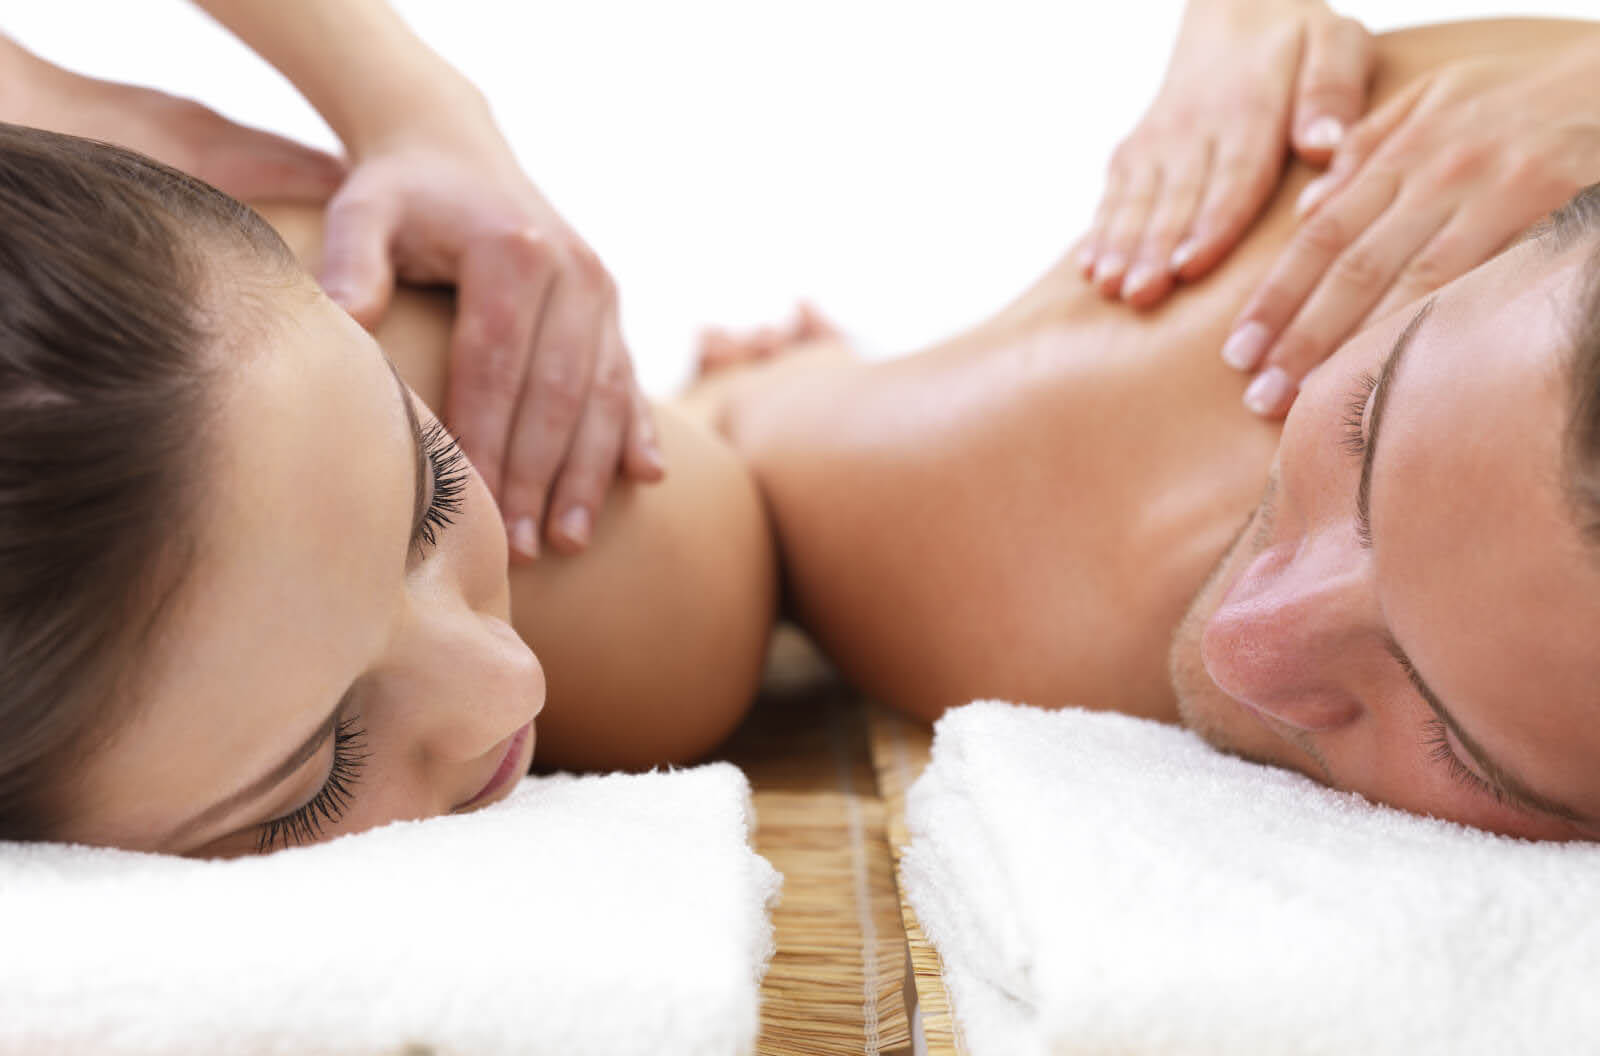 Couples Massage at Oasis Massage & Spa in Des Moines, WA and Normandy Park, WA - Couples Massage at 8 Spa in Kent, WA - massage near me